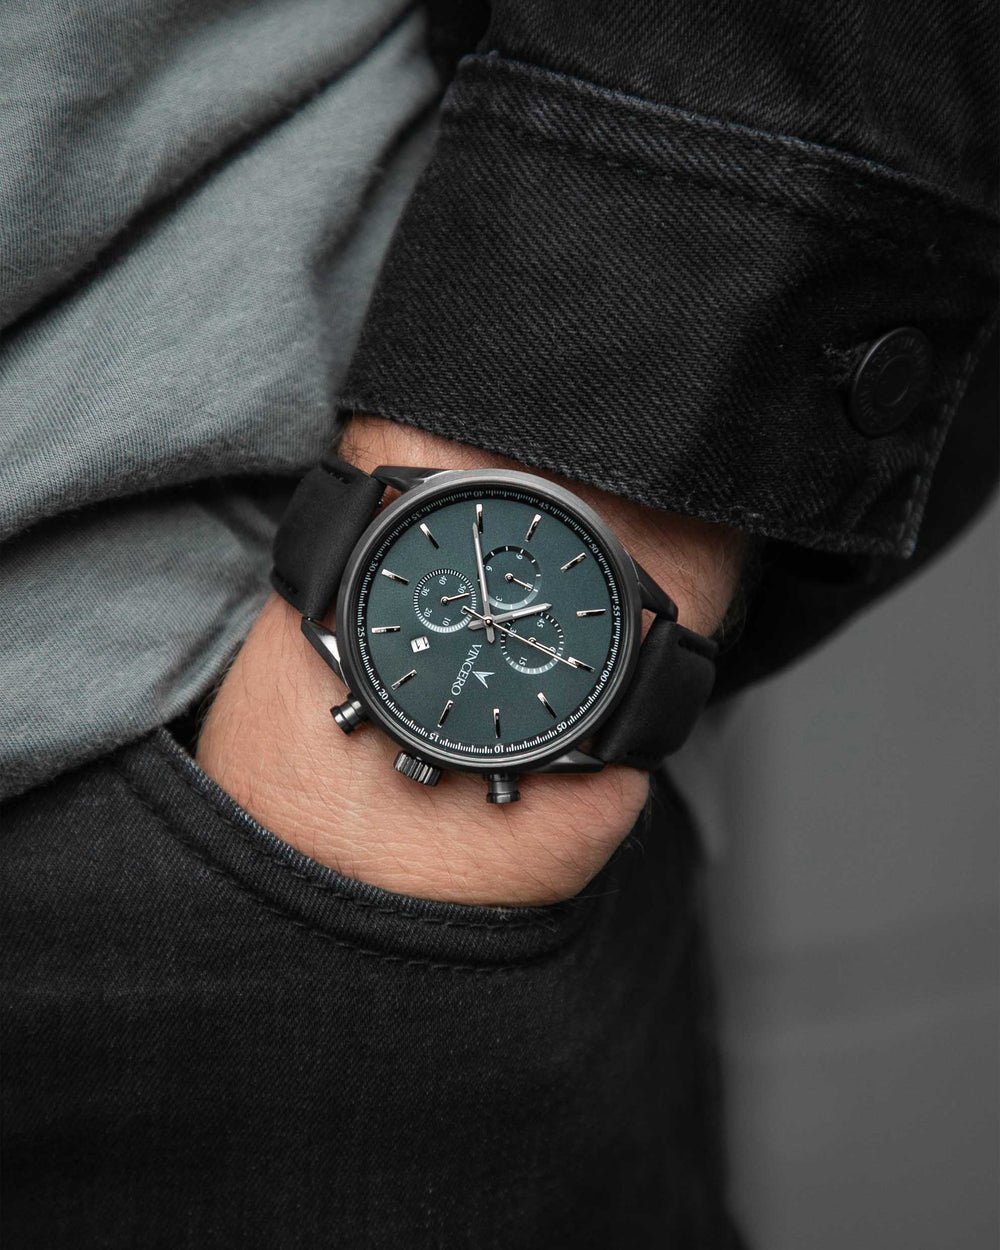 Chrono S Black Italian Leather Strap Slate Blue Watch Face Gunmetal Case Clasp Silver Accents